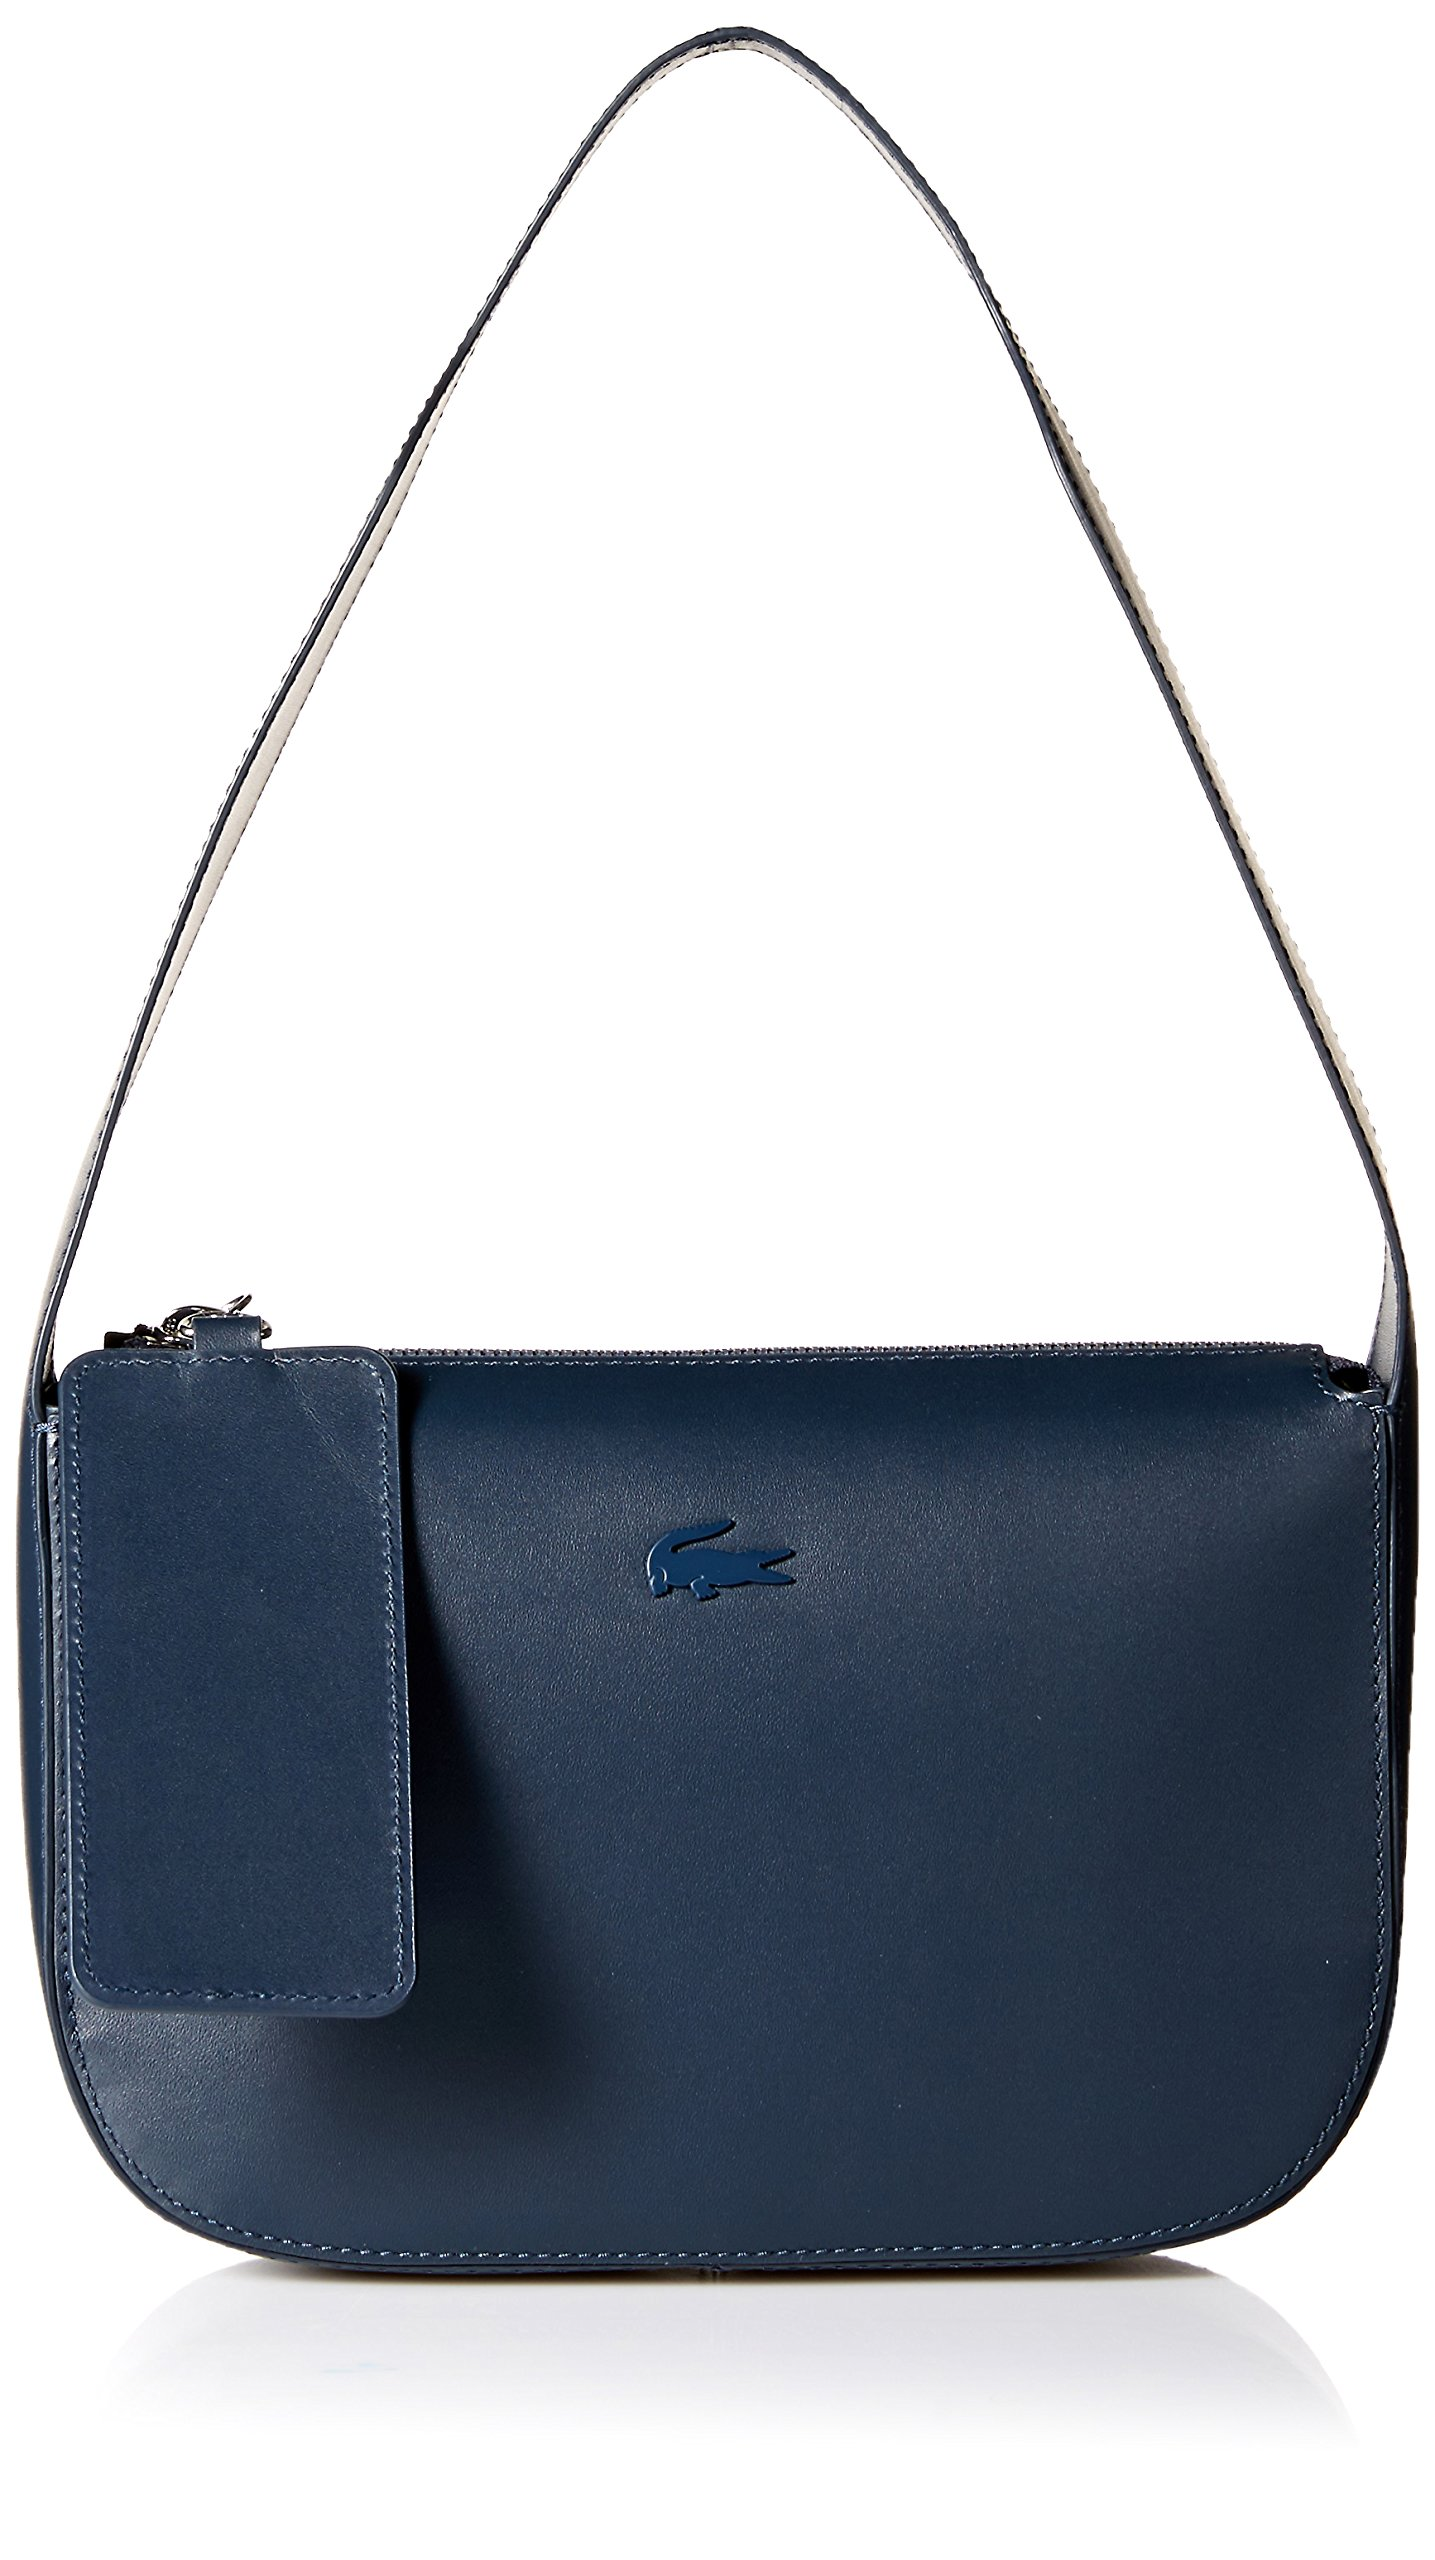 Lacoste Extra Small Hobo Bag, Nf2379py, Total Eclipse